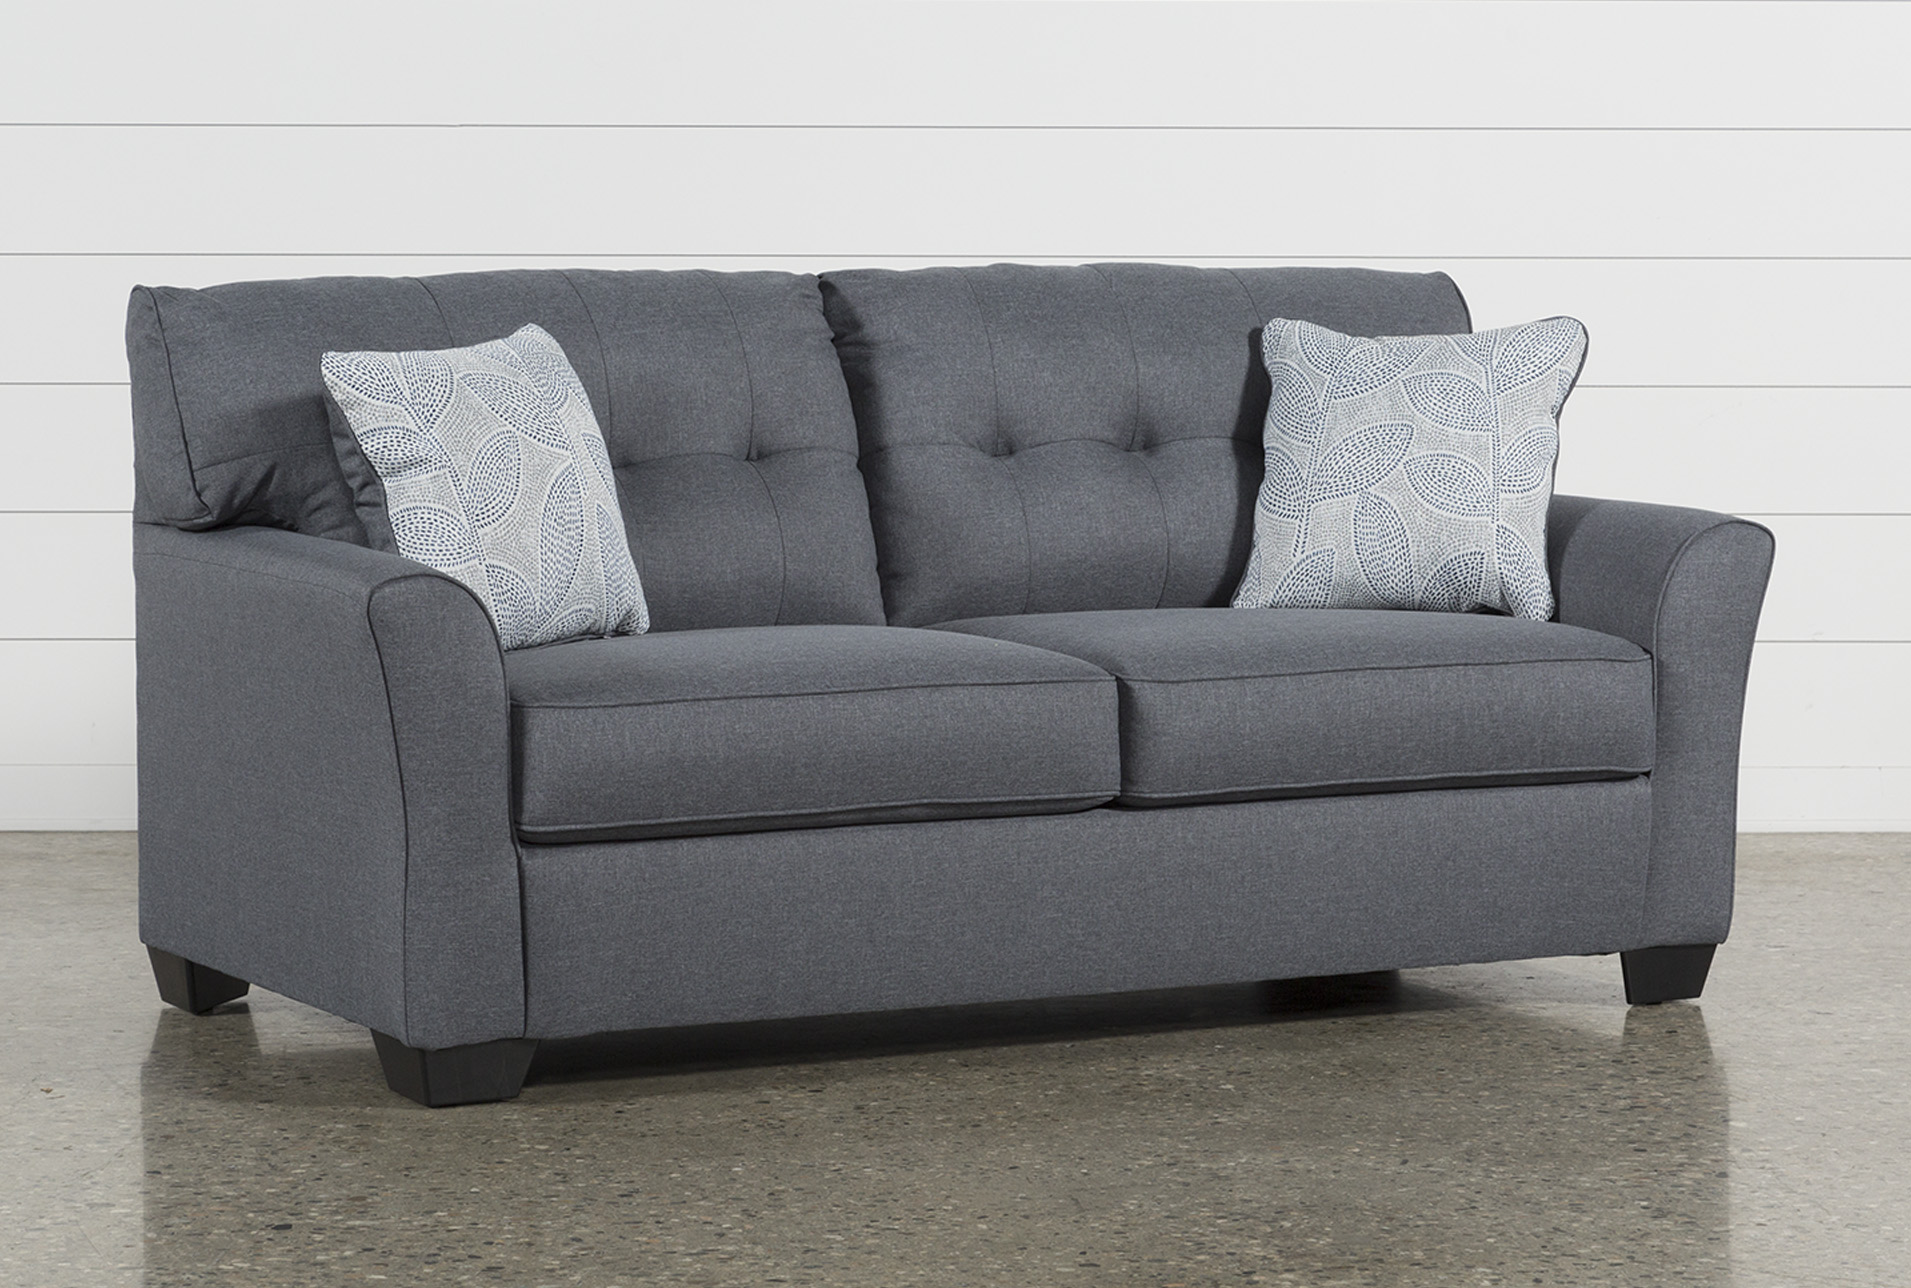 Fabric Sofa Beds + Sleeper Sofas - Free Assembly with Delivery